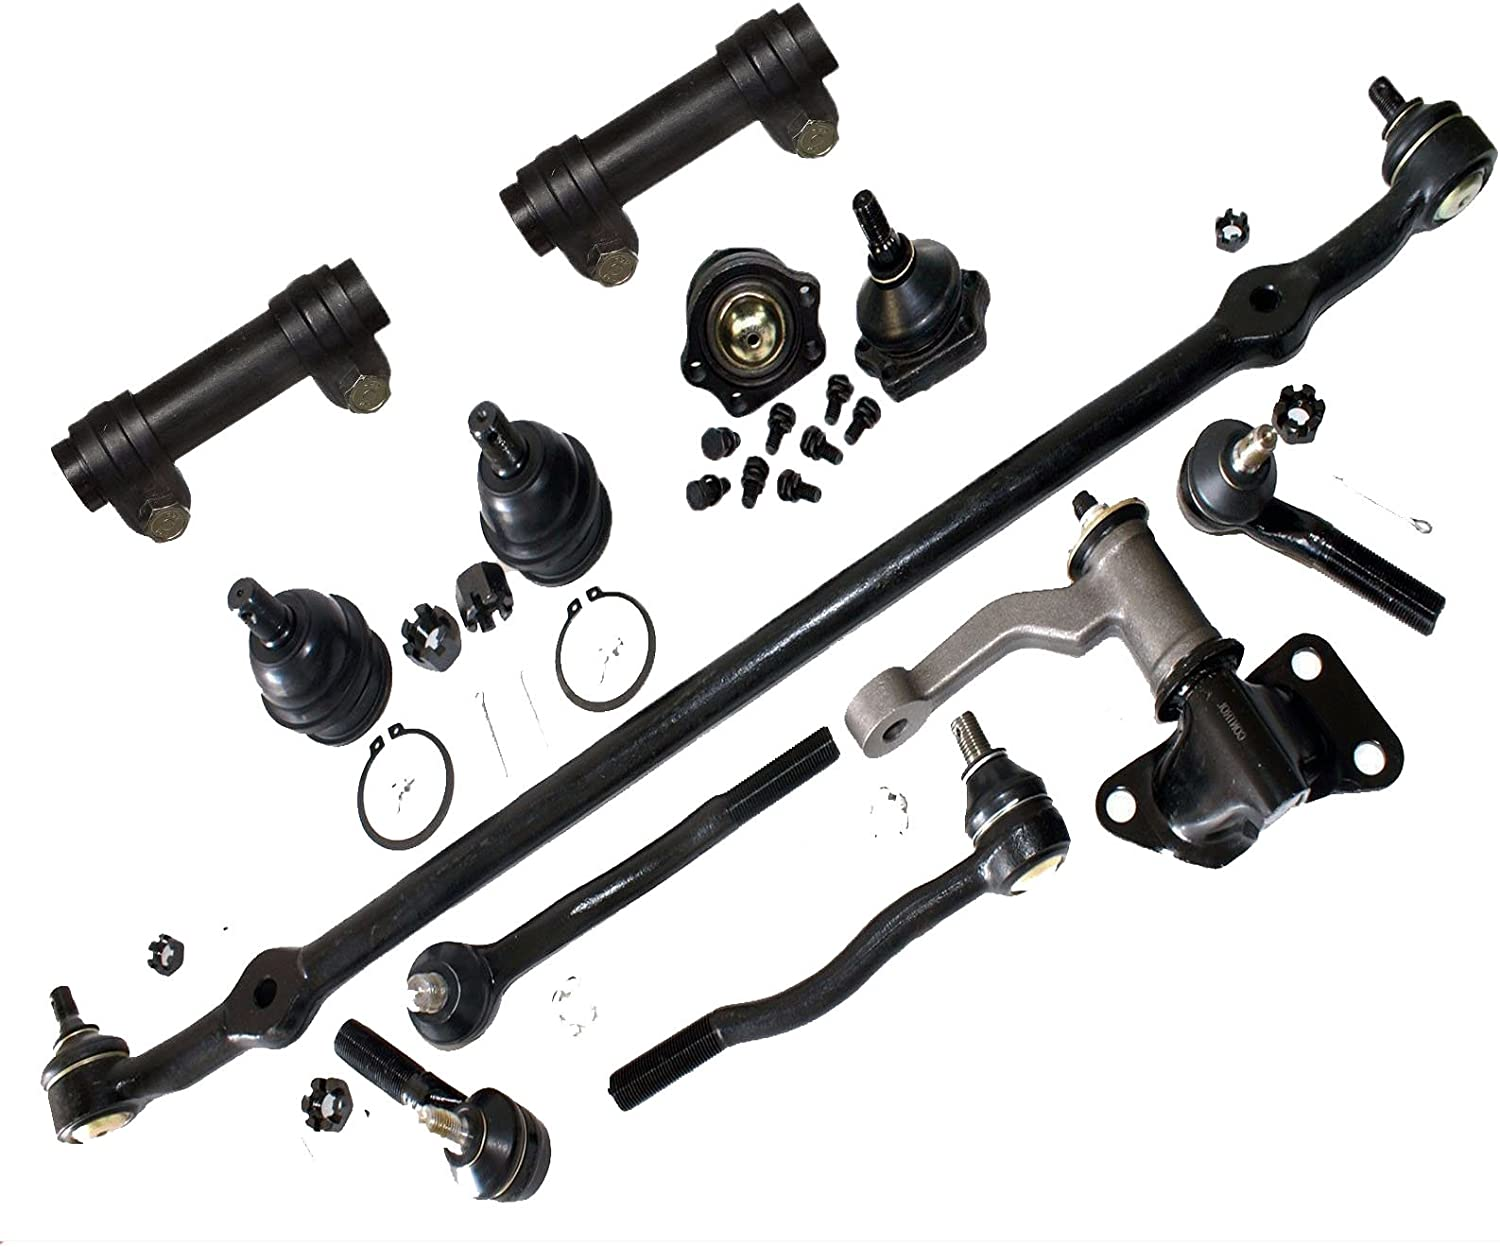 12 pc Kit Tie Rod Ends Idler Arm Ball Joints For Nissan D21 Pickup 86-97 2WD